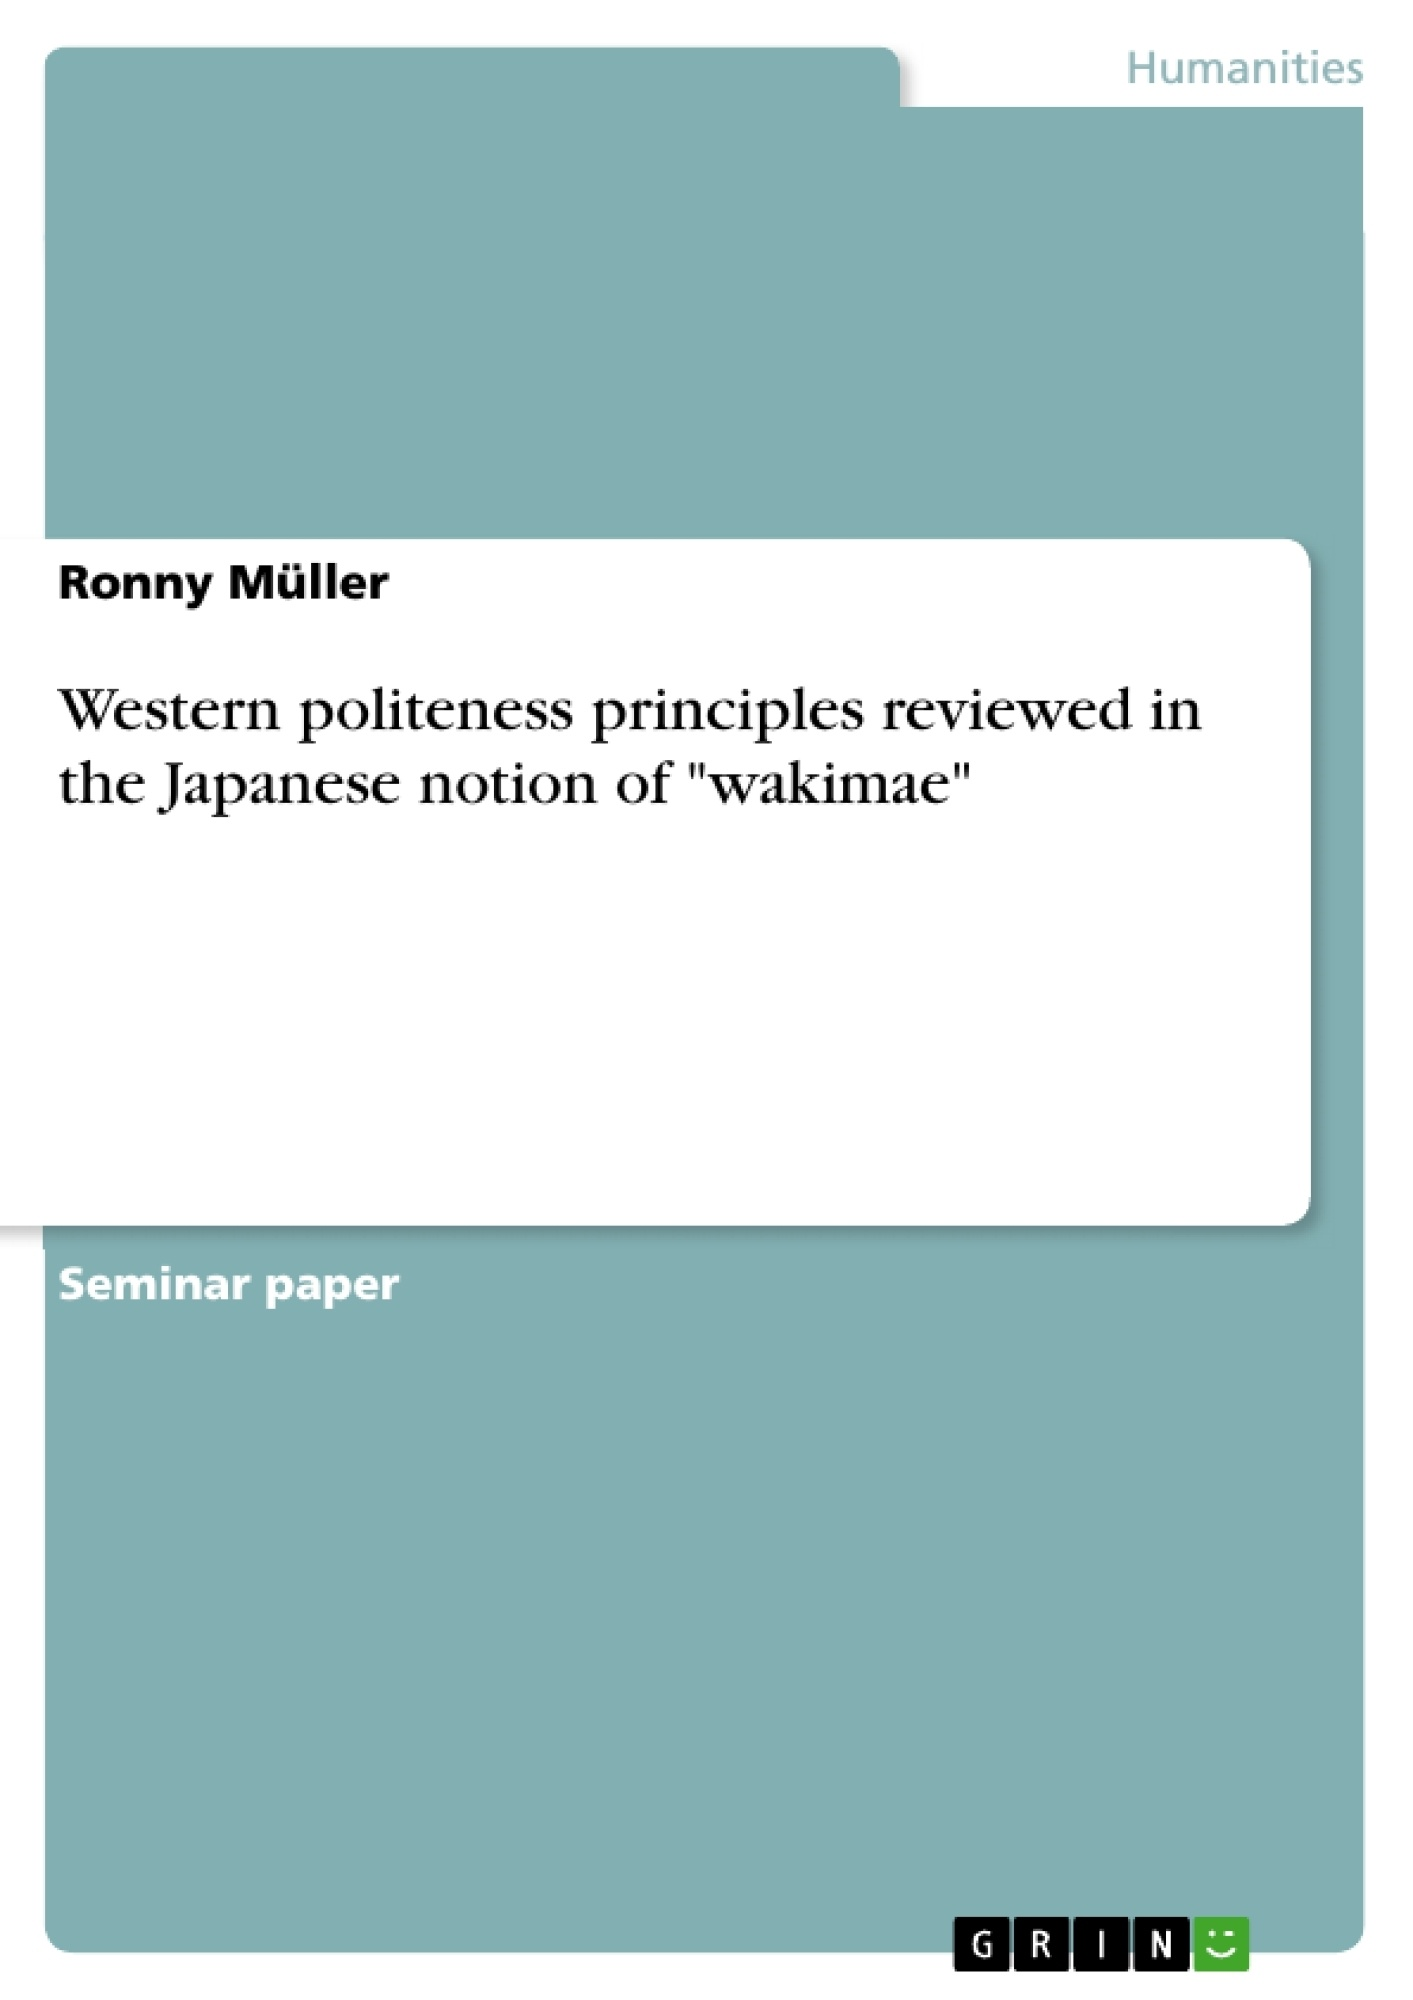 """Title: Western politeness principles reviewed in the Japanese notion of """"wakimae"""""""